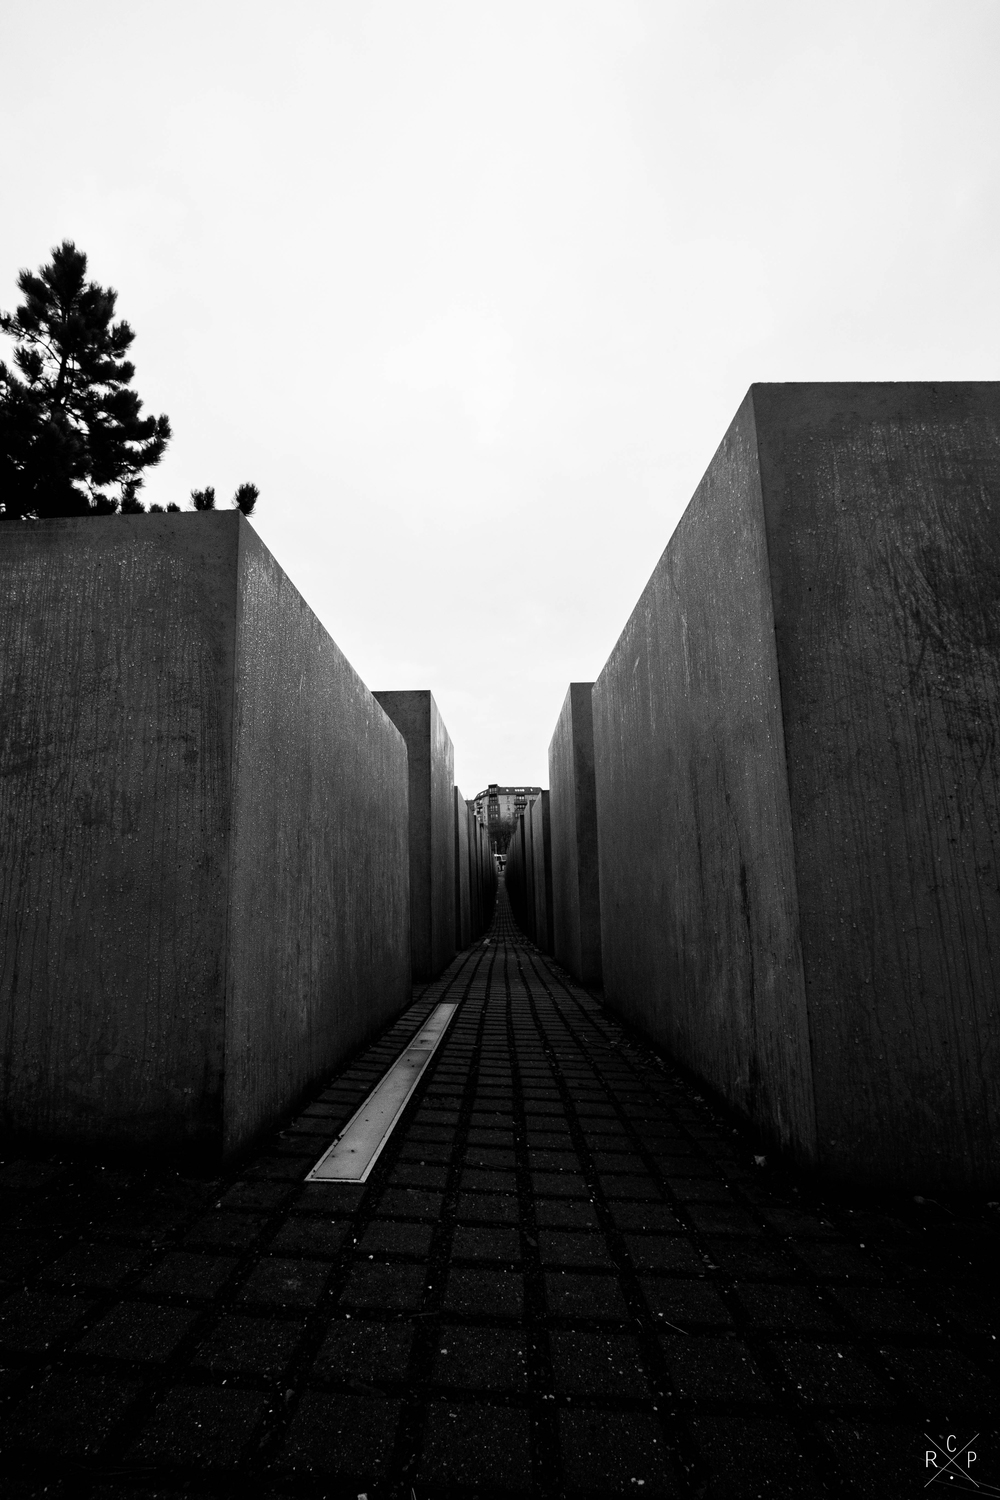 Memorial Isles 2 - Memorial To The Murdered Jews Of Europe, Berlin, Germany 02/12/2015